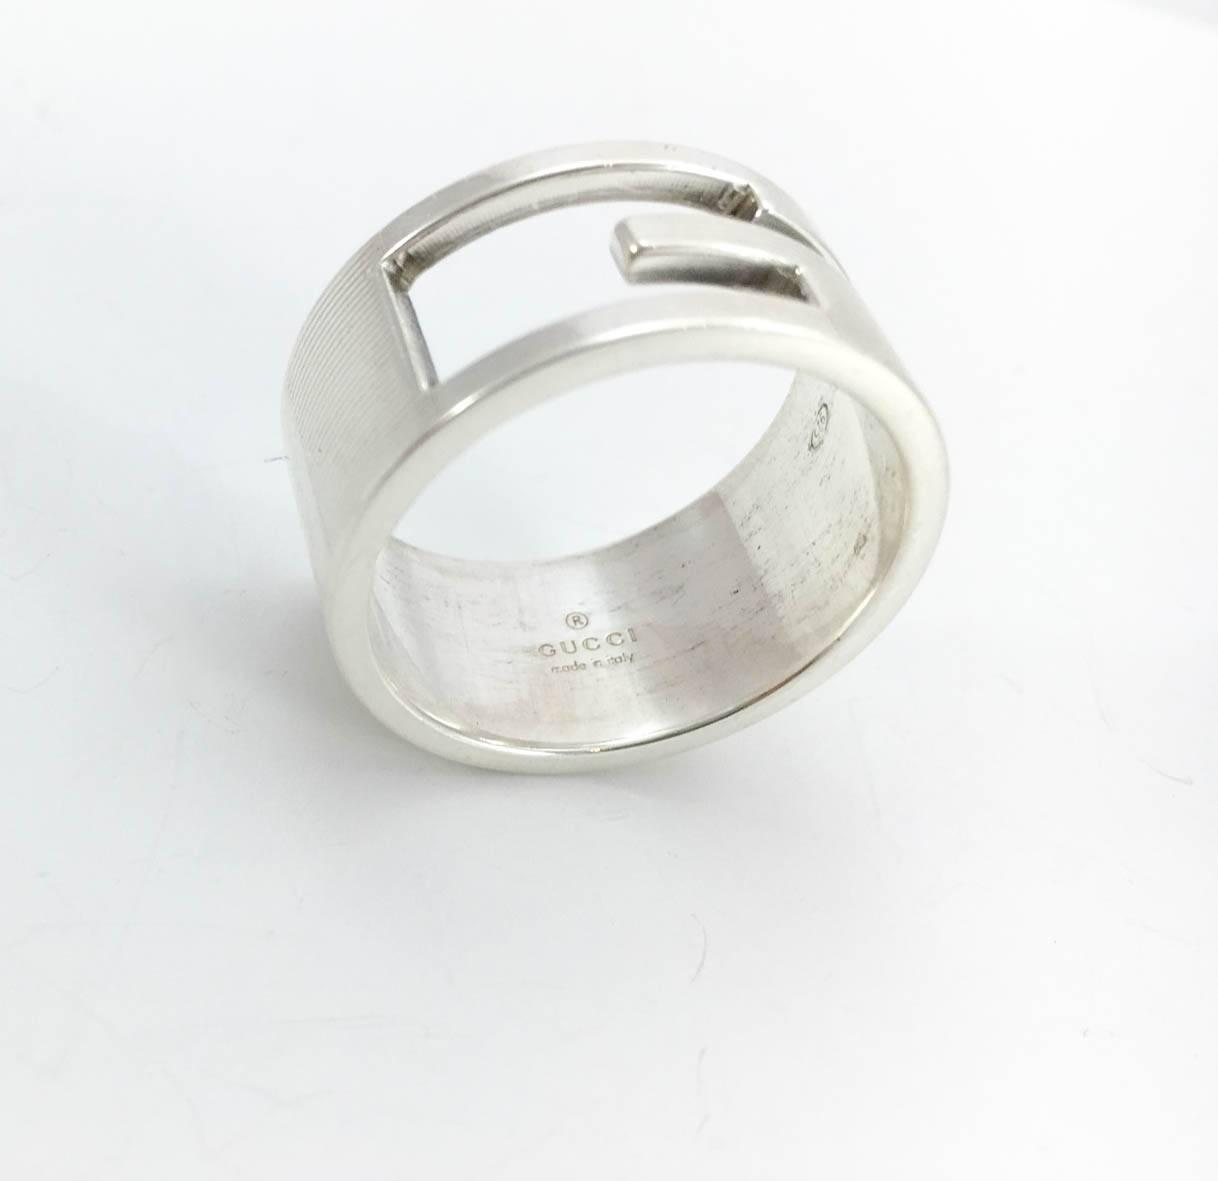 gucci silver s ring for sale at 1stdibs